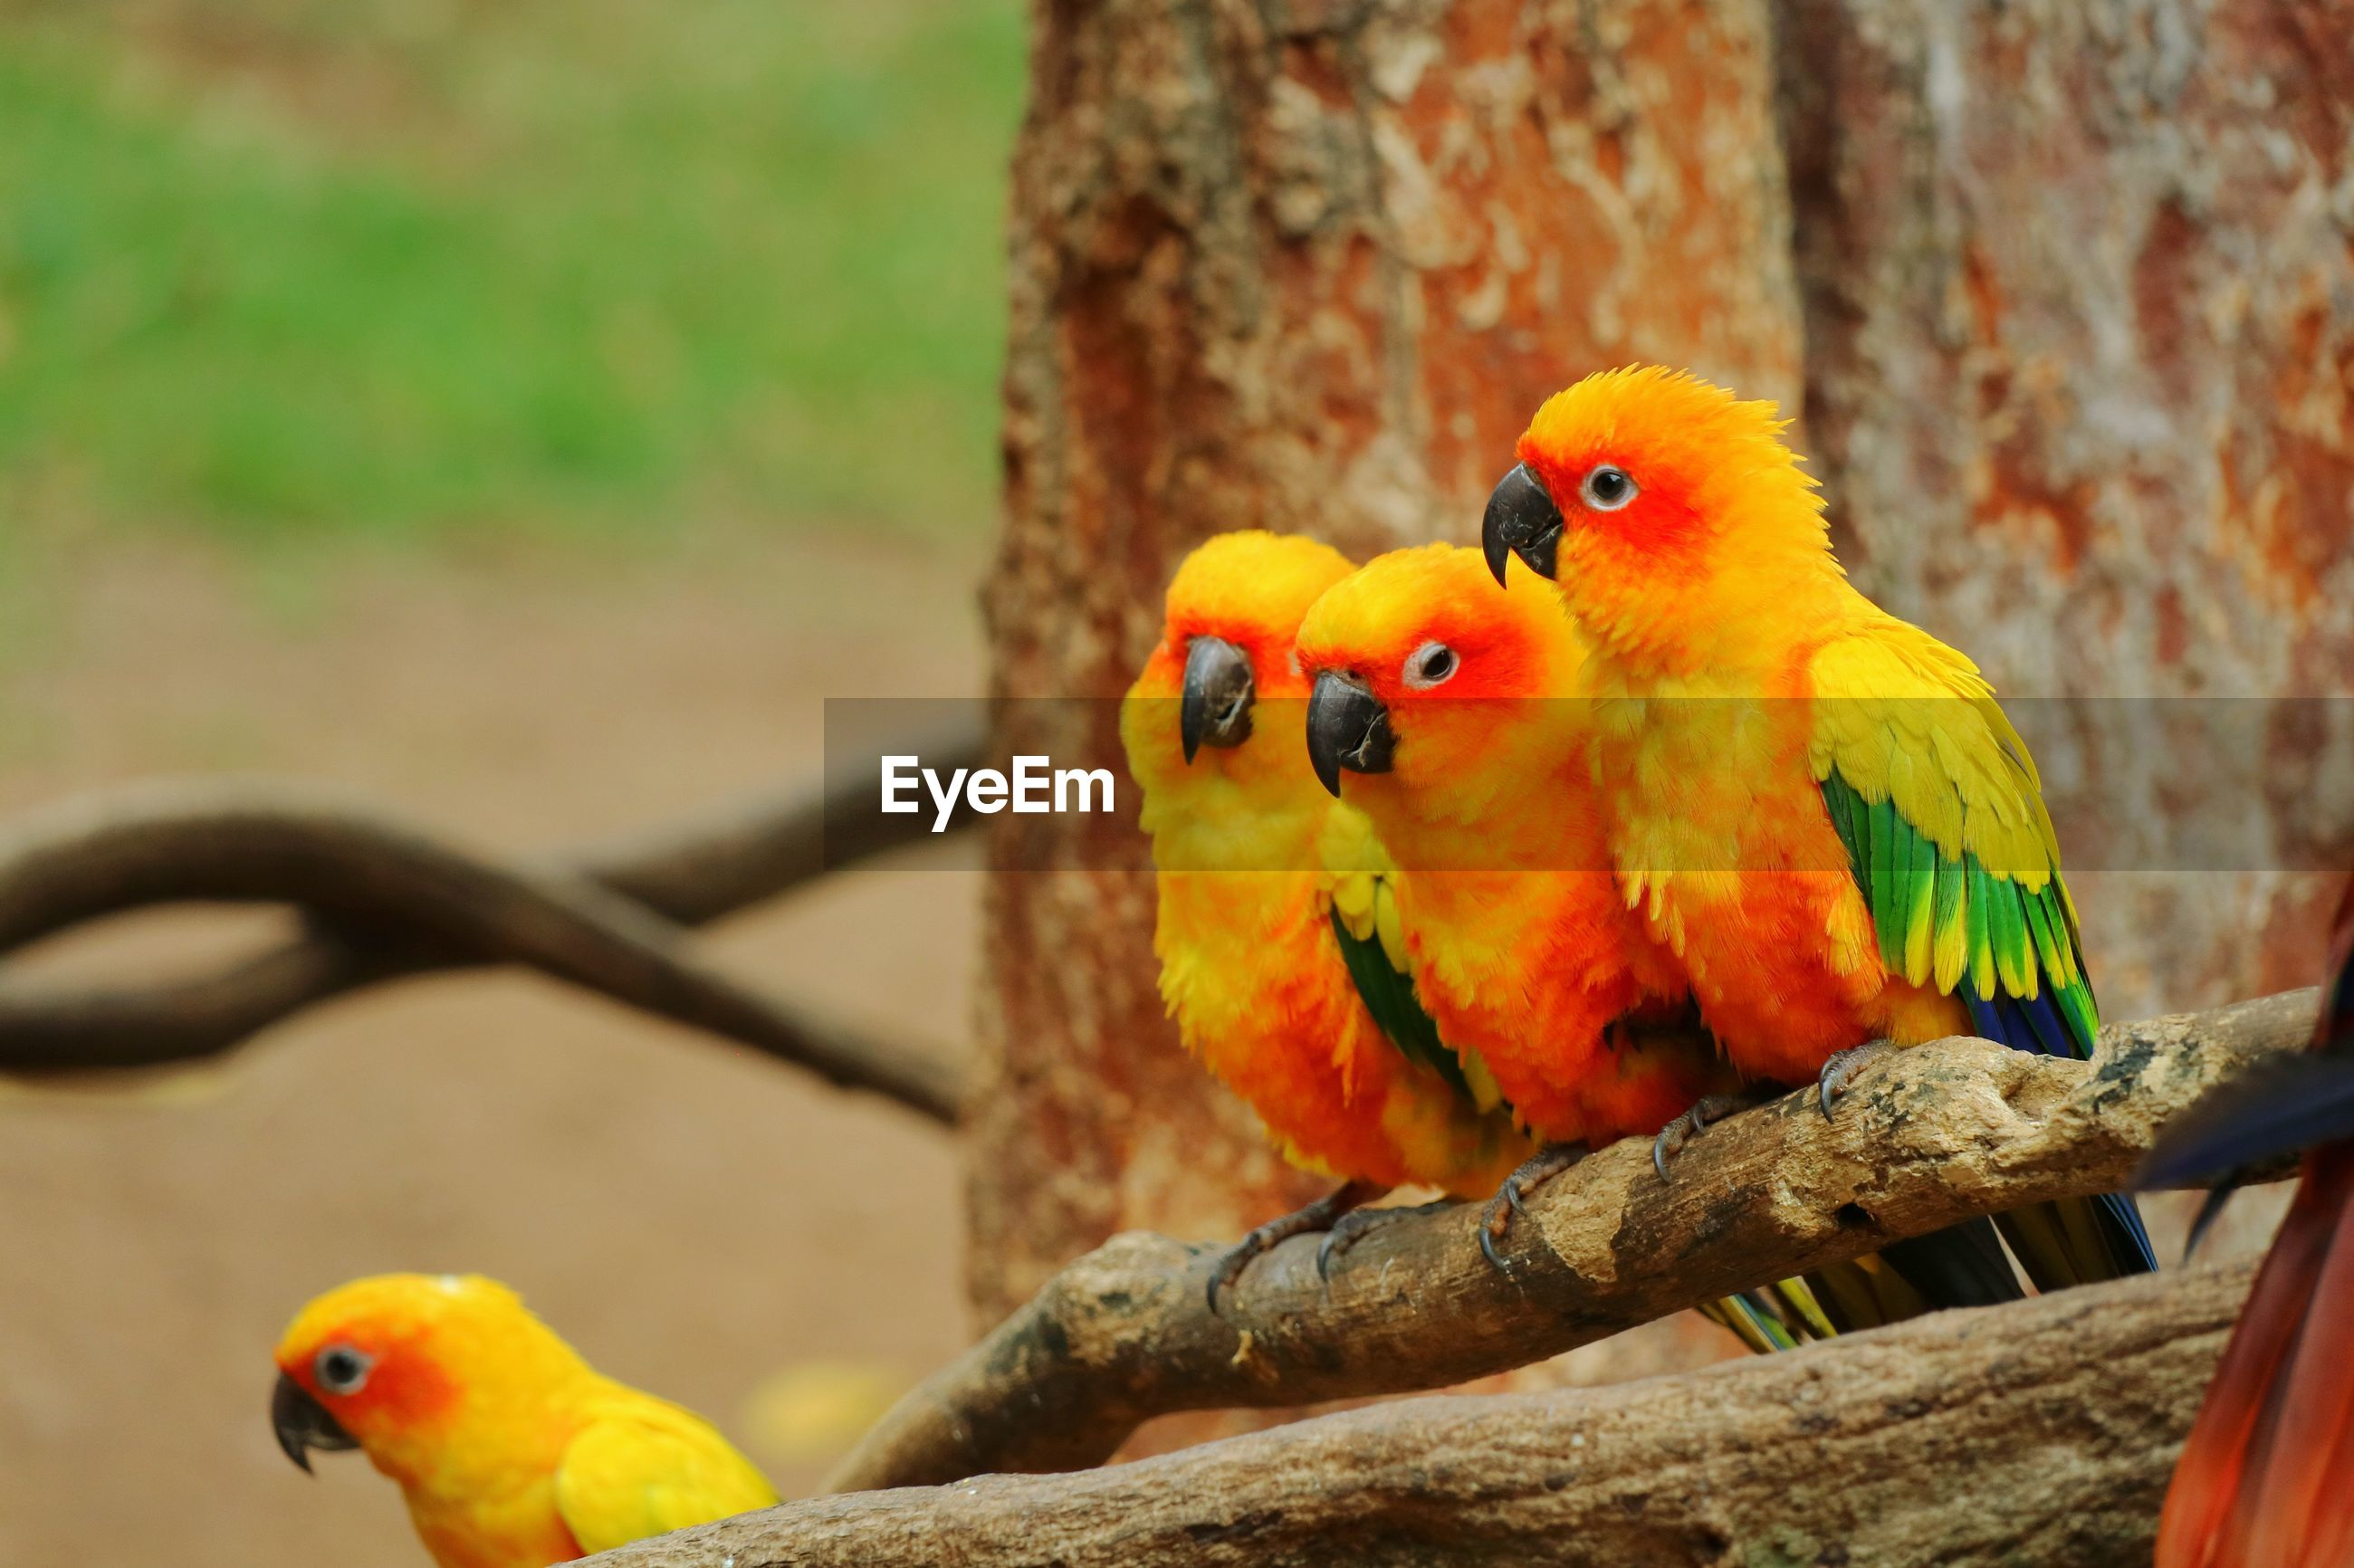 Orange, yellow and green parrots sitting and looking something on a wooden perch.